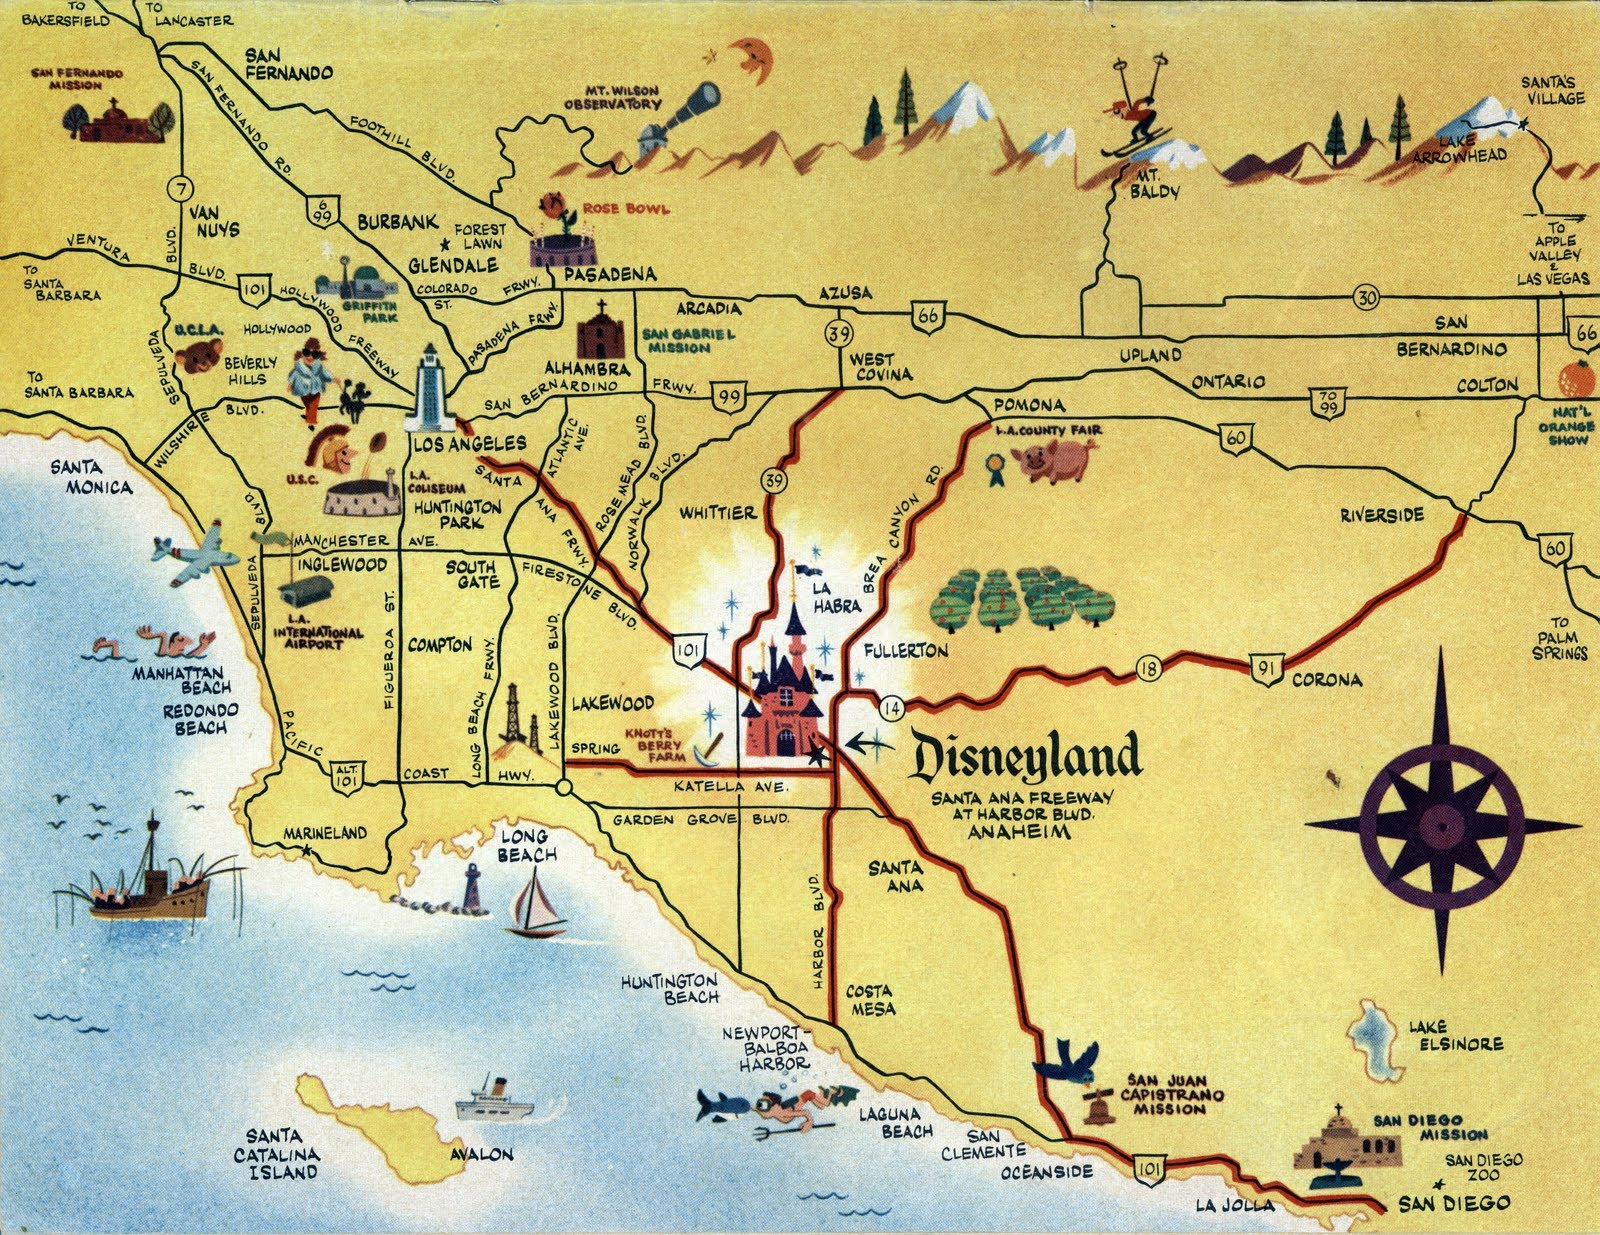 Vacationland Bmagazine Bmap C B Map Road With Aliso Viejo California - Mission Viejo California Map